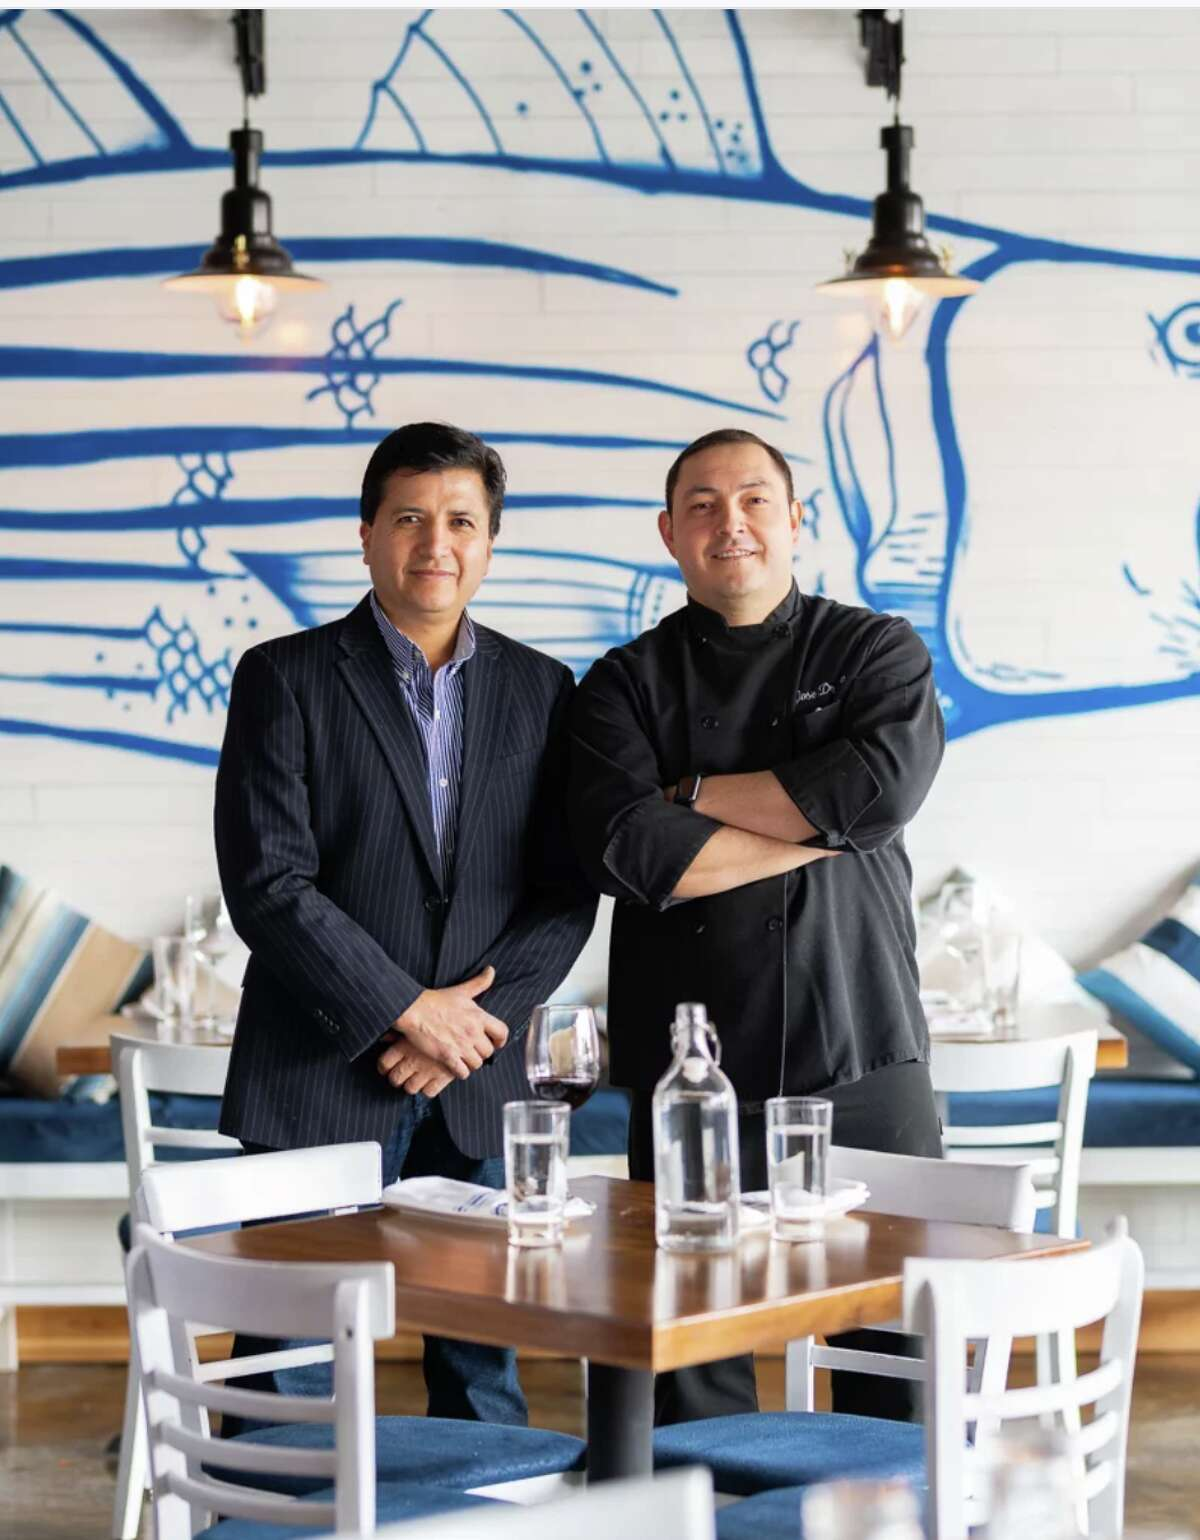 Restaurateur Wilson Rodriguez and chef Jose Draganac, the co-owners of New Cannan's Pesca Peruvian Bistro, are opening Ayahuasca Peruvian Cuisine in Norwalk this June.